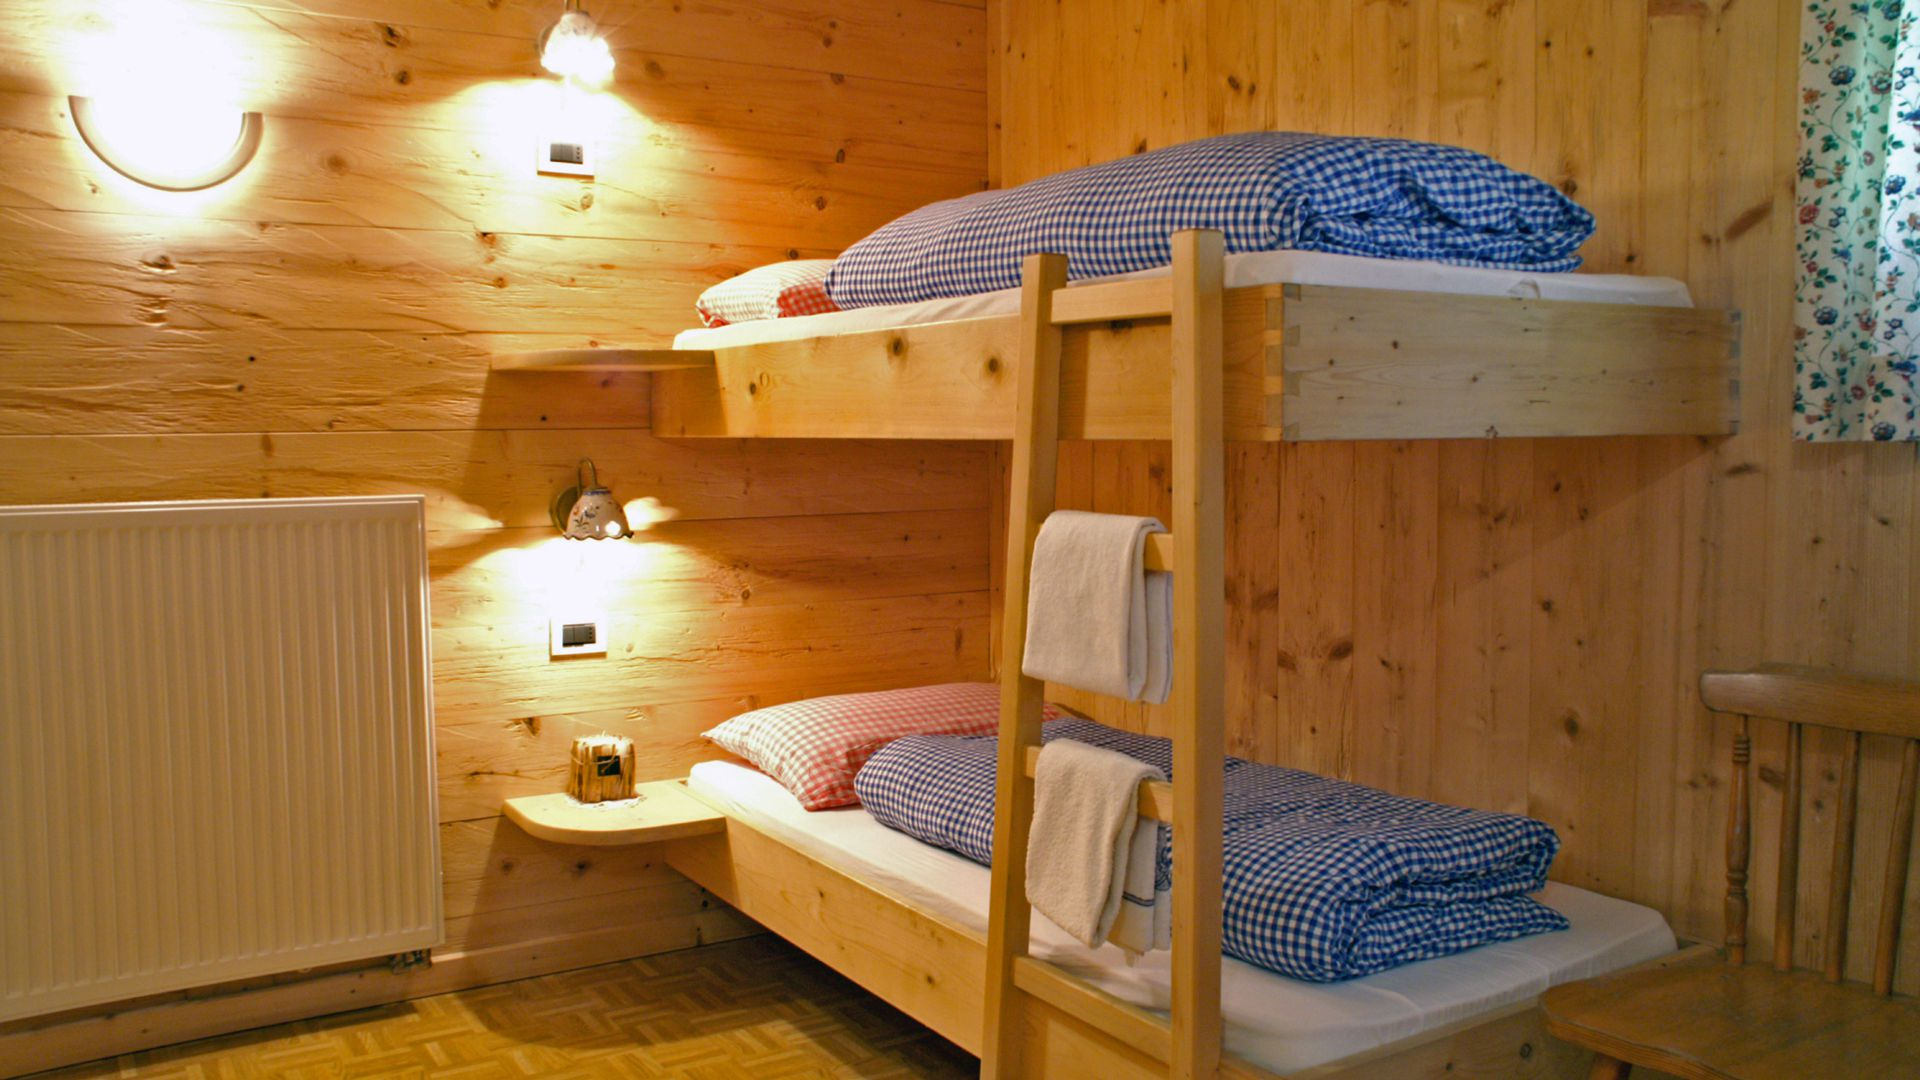 Image: The rooms of the Scotoni Moutain Hut in Alta Badia